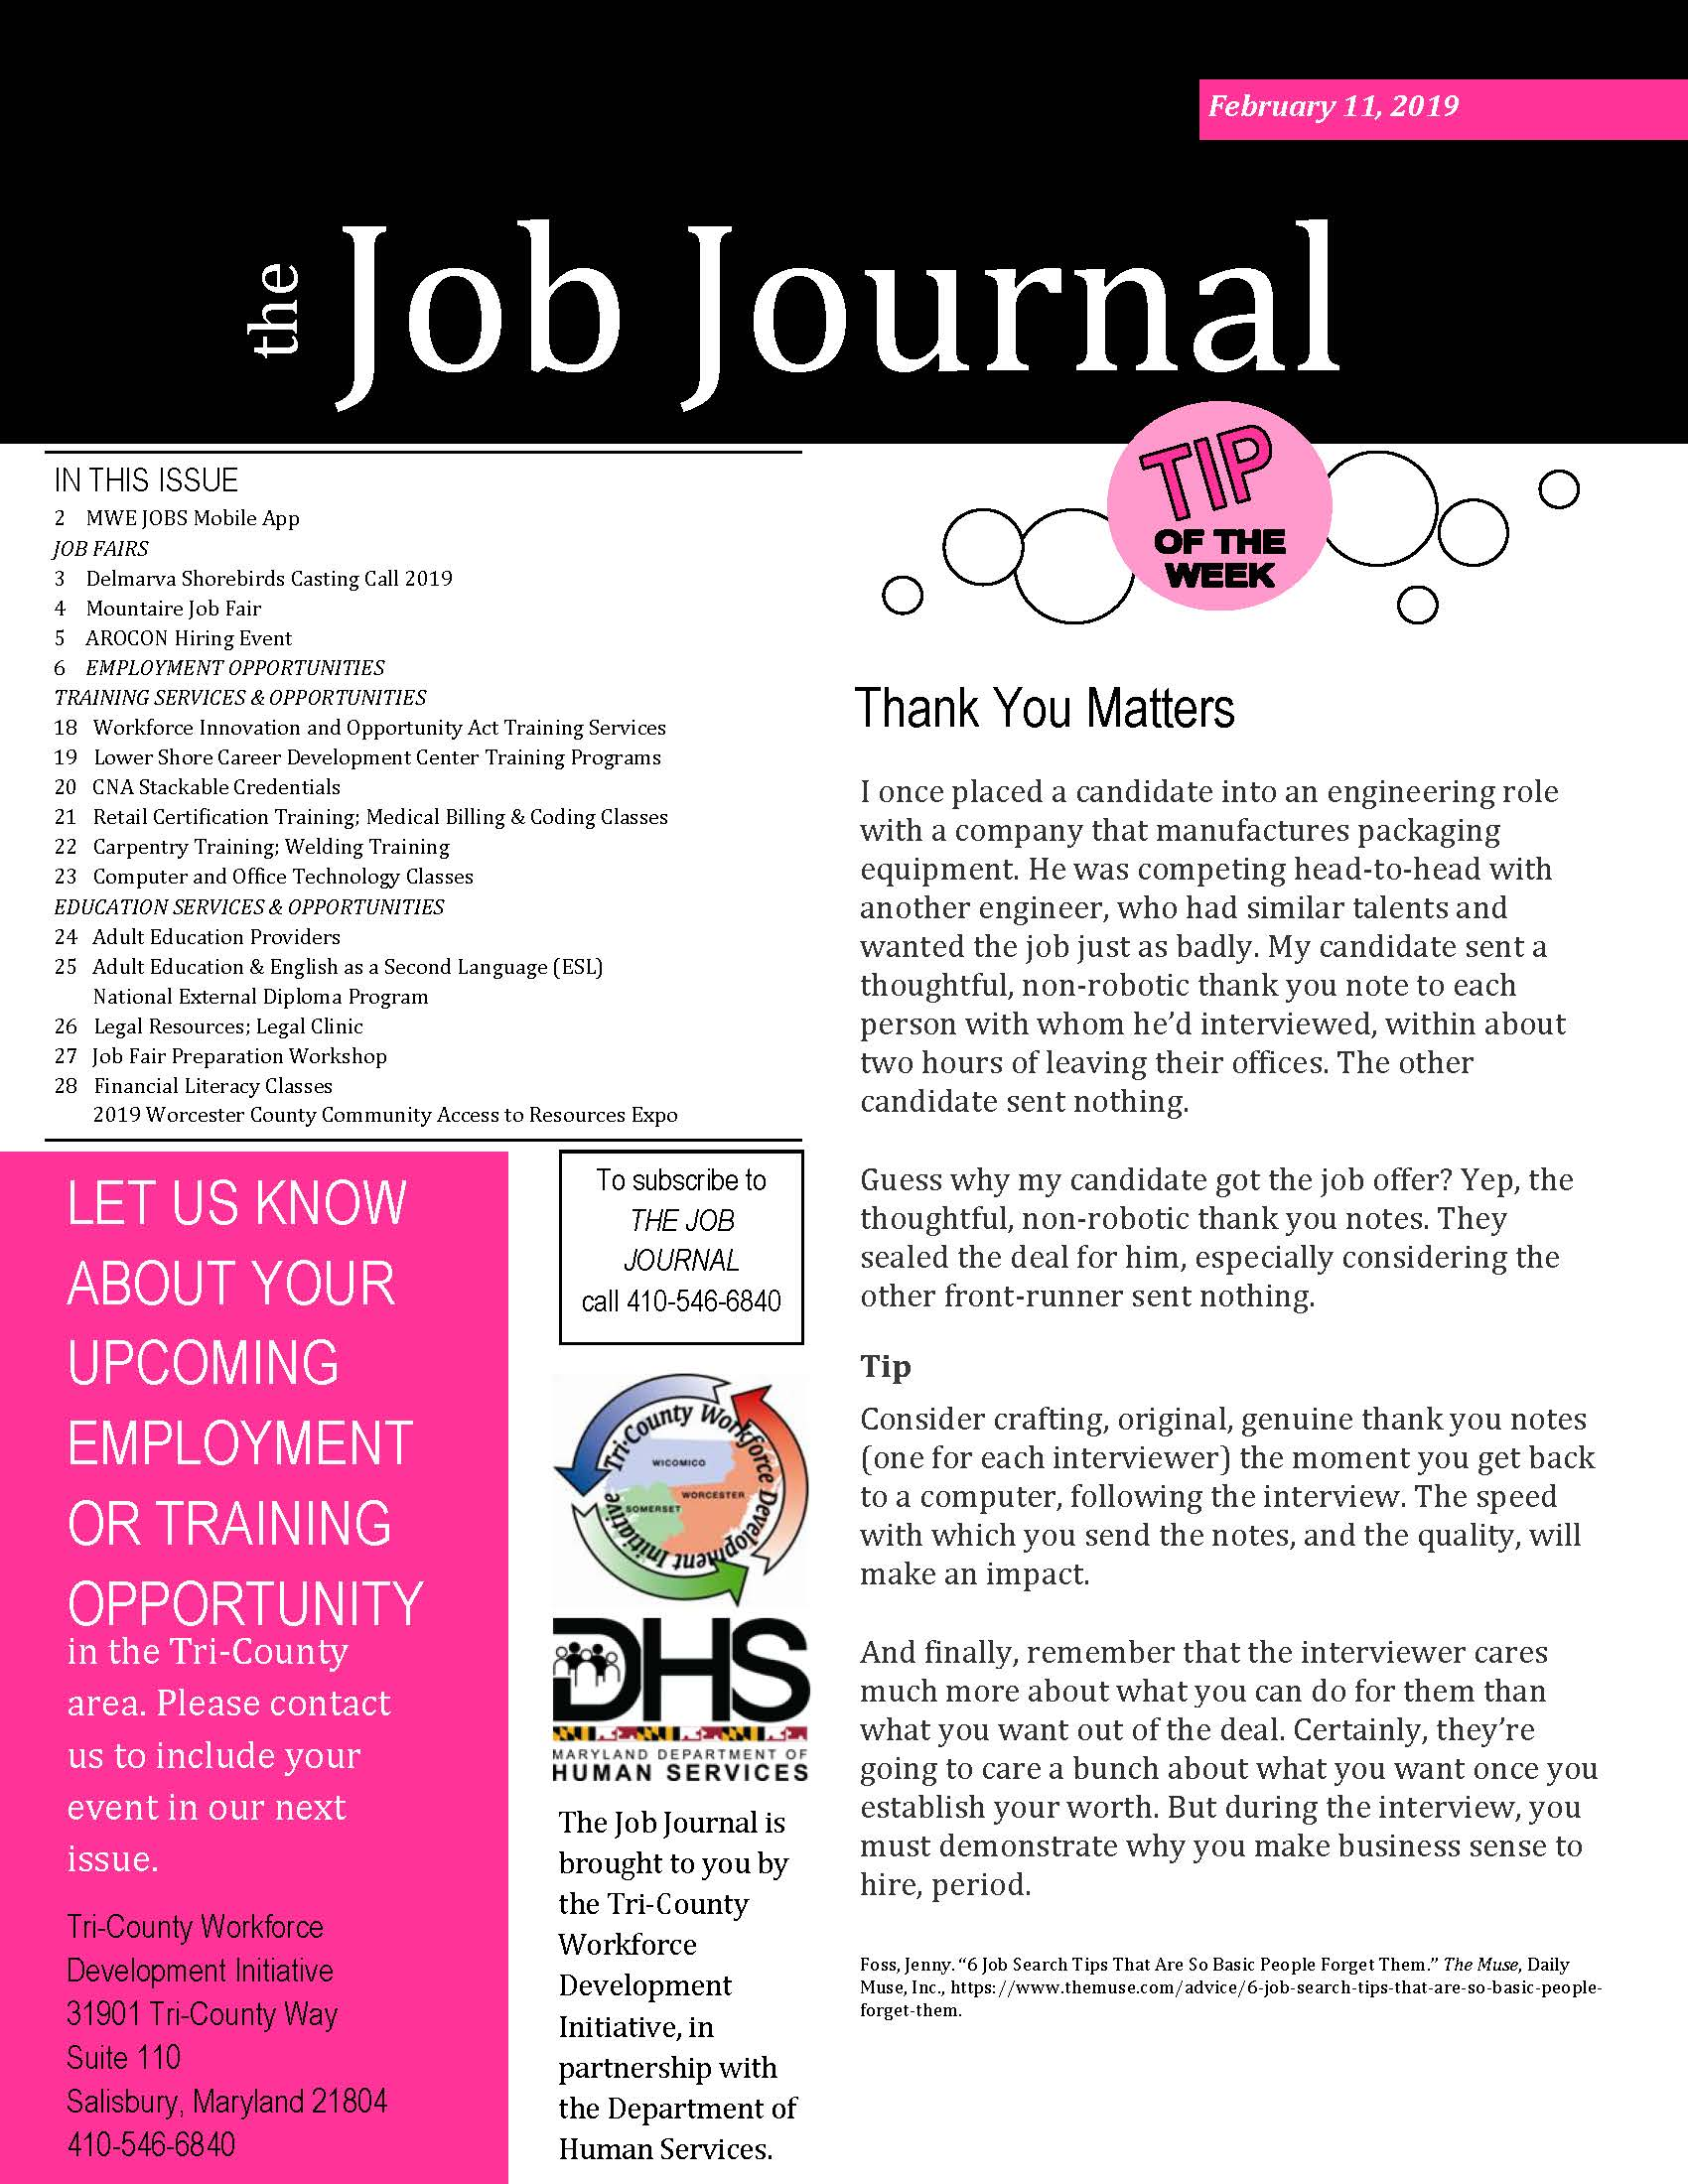 The Job Journal Feb. 11, 2019